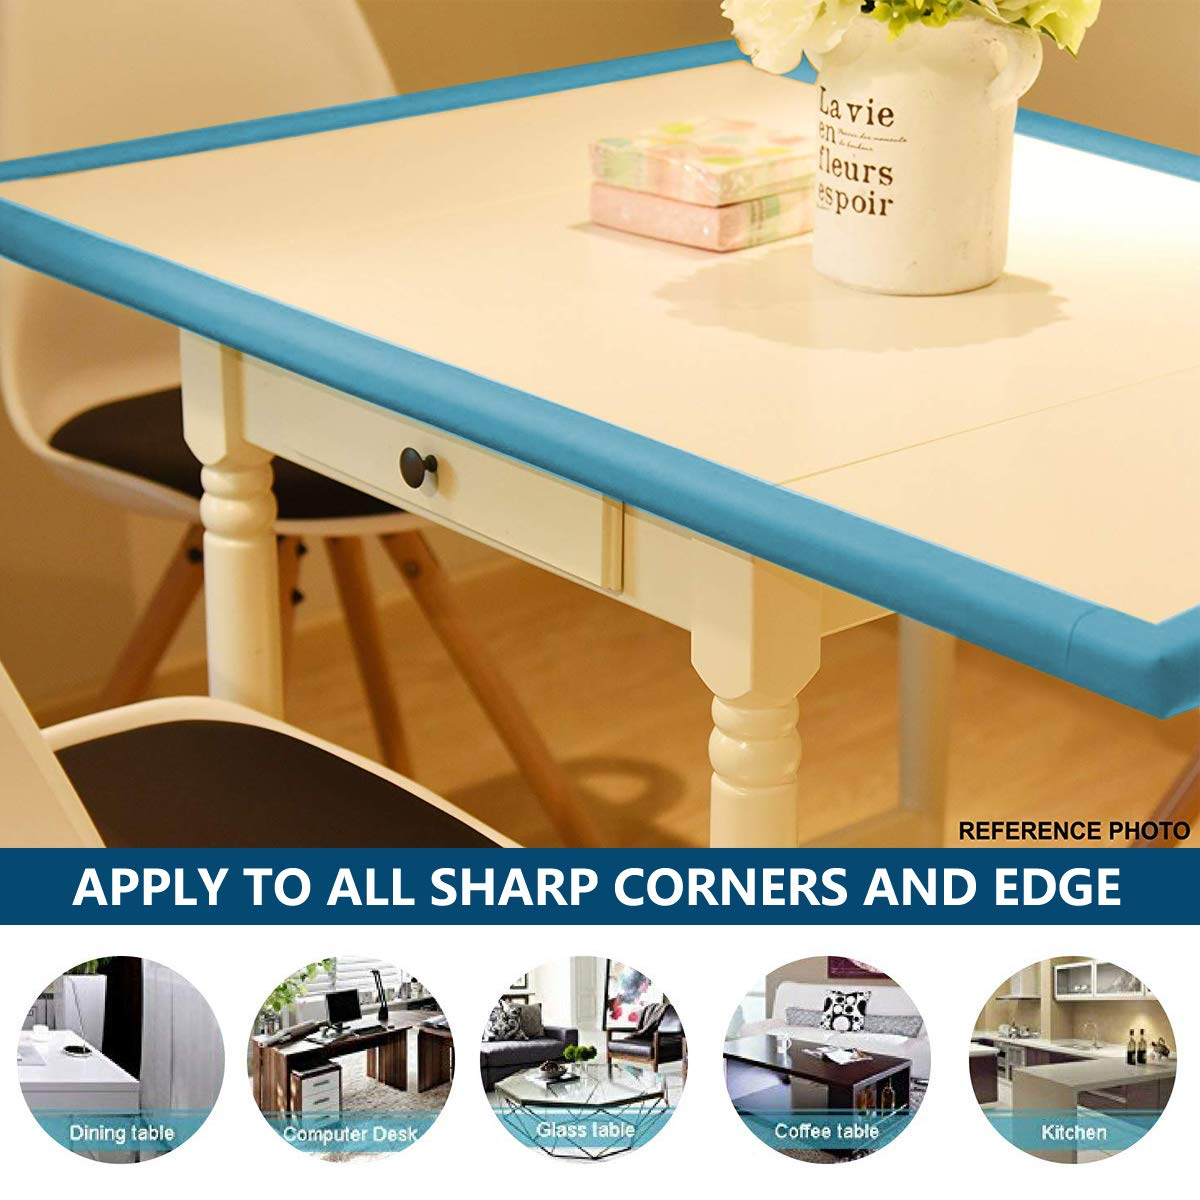 6.56Ft Edge Guard Safety Corner Protectors Guards /& Edge Set Green 4Pcs Corner Guard with Strong Adhesive Augola Table Corner Guards for Child and Baby Proofing